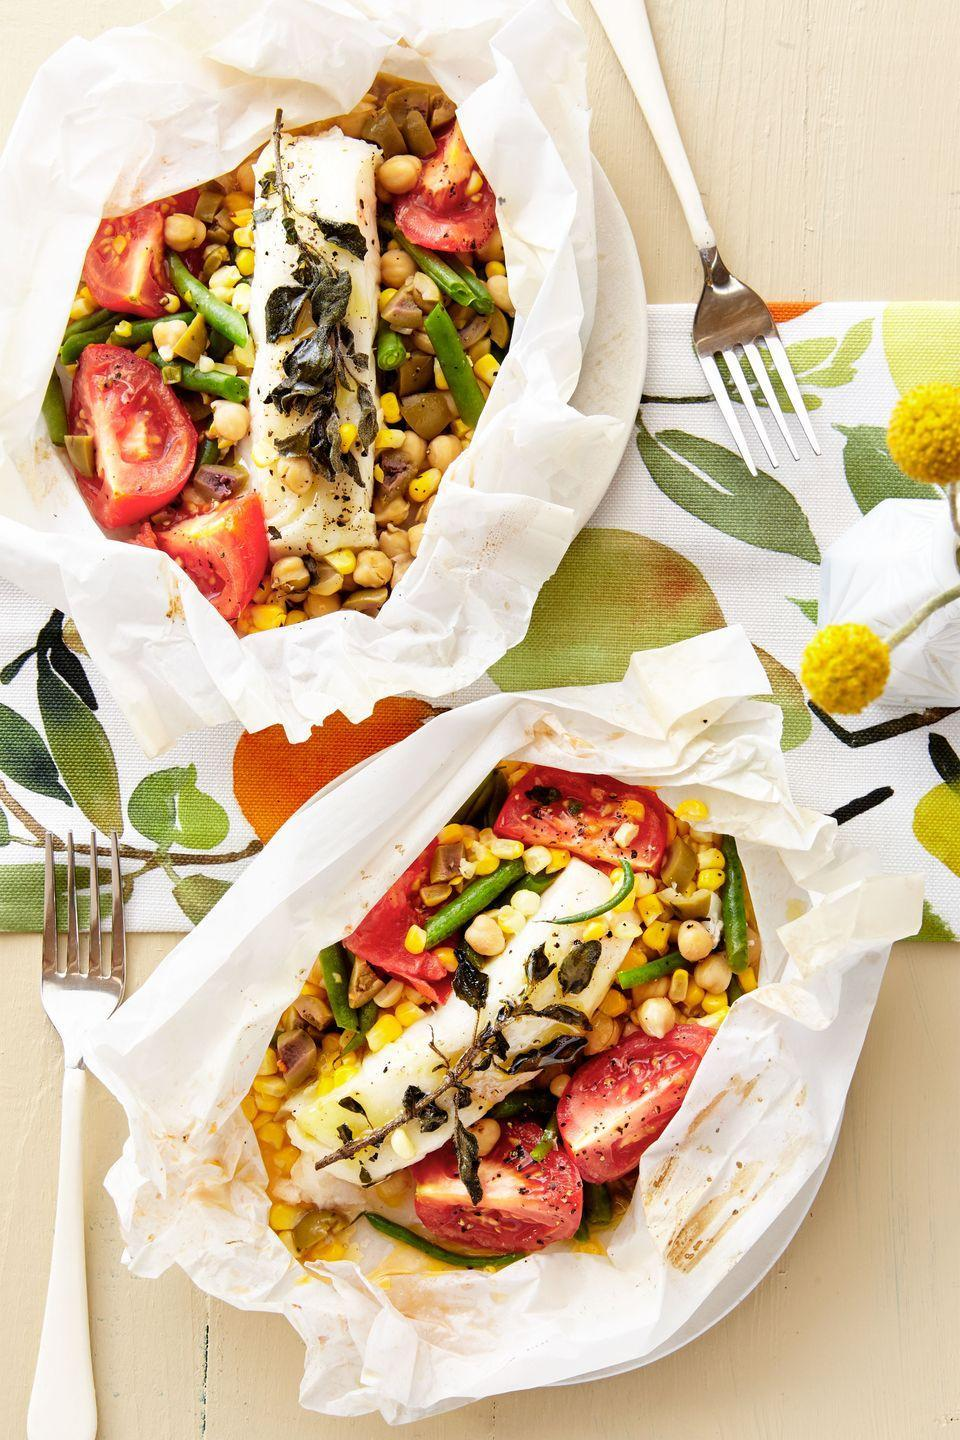 """<p>Get dinner on the table quick (and keep dirty dishes to a minimum) with these simple fish packets.</p><p><strong><a href=""""https://www.countryliving.com/food-drinks/recipes/a38076/bass-packets-with-tomato-corn-chickpeas-and-olives-recipe/"""" rel=""""nofollow noopener"""" target=""""_blank"""" data-ylk=""""slk:Get the recipe"""" class=""""link rapid-noclick-resp"""">Get the recipe</a>.</strong></p>"""